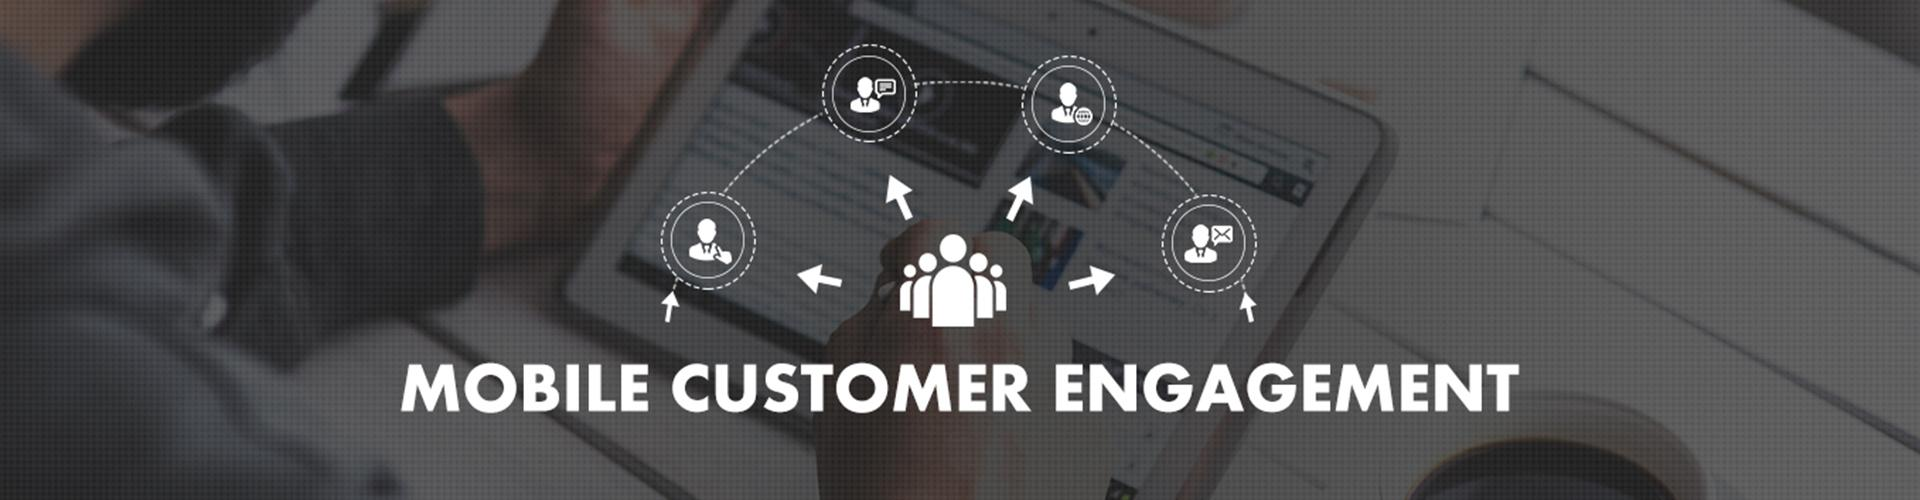 Mobile Customer Engagement Services